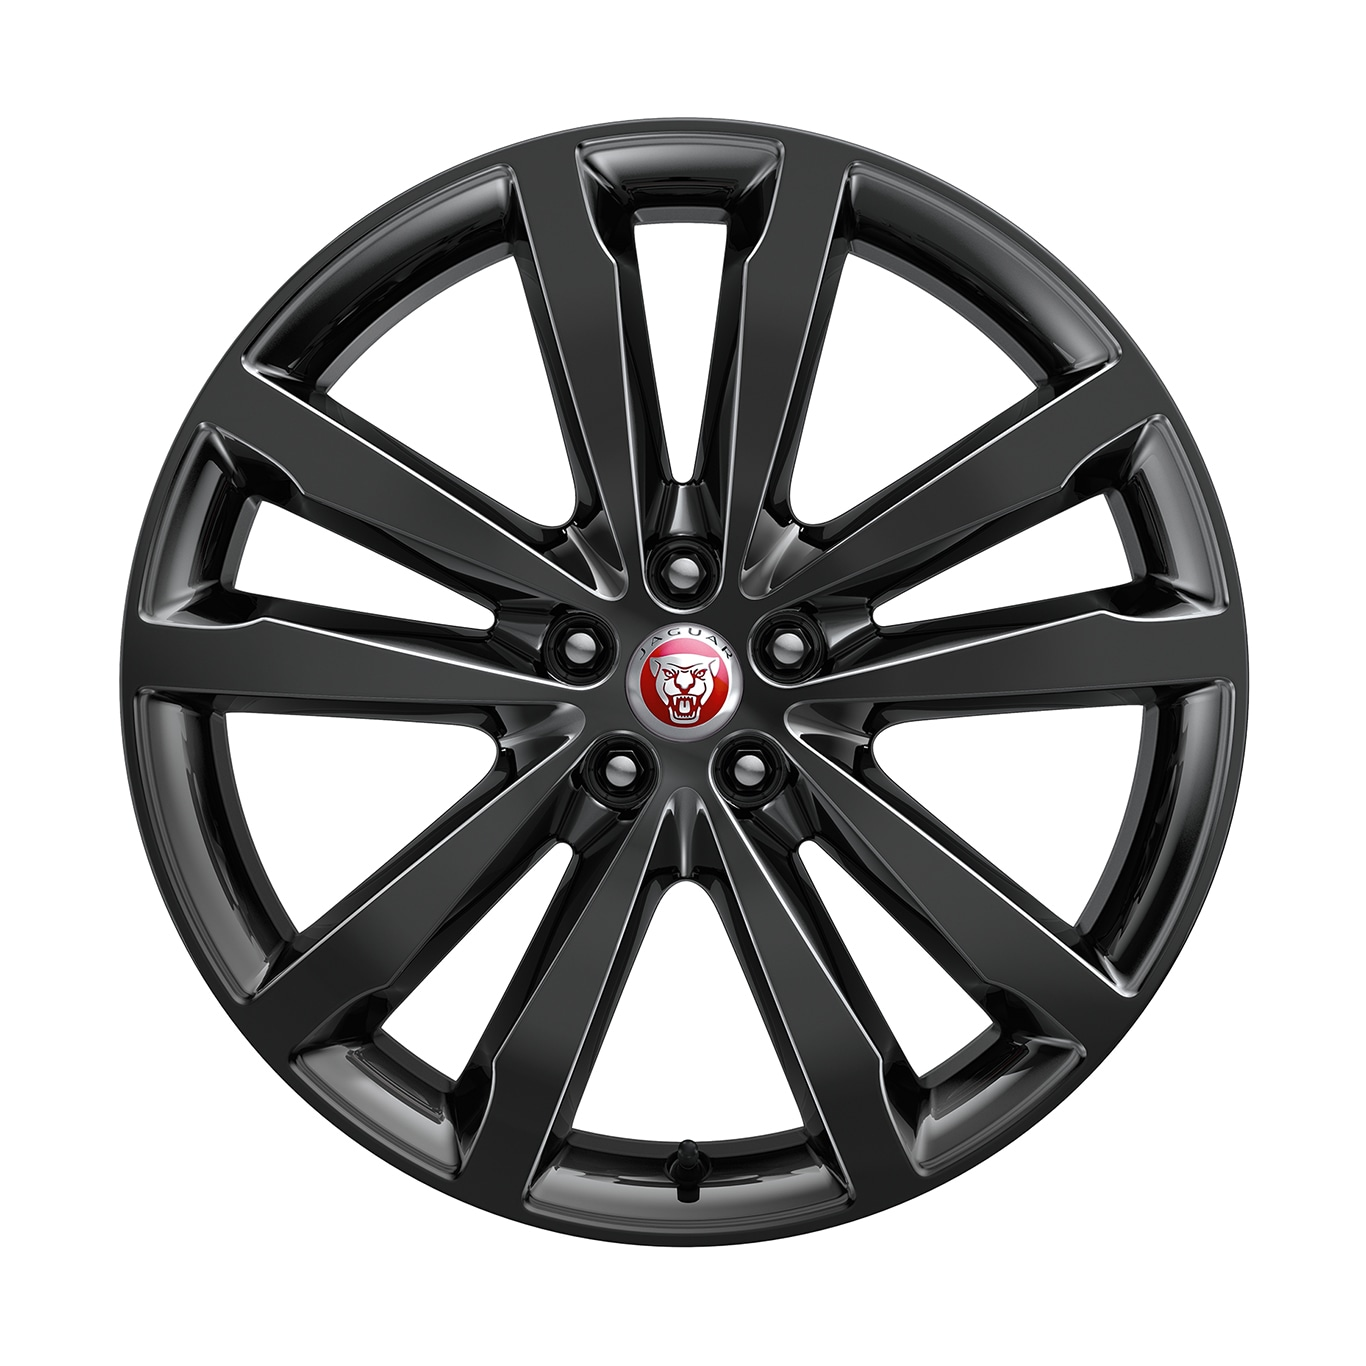 "Alloy Wheel - 20"" 5 Split-Spoke, 'Style 5051' with Gloss Black finish"